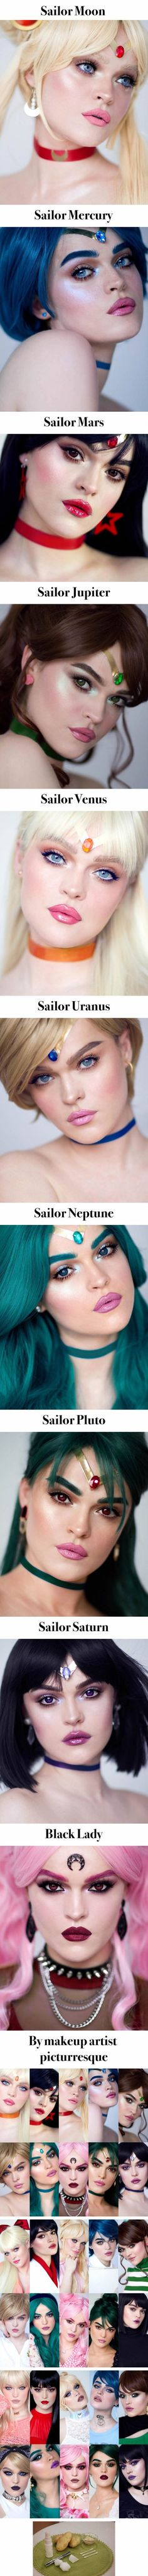 Makeup artist does up every single Sailor Senshi from Sailor Moon. Sailor Saturn is my fav - COSPLAY IS BAEEE!!! Tap the pin now to grab yourself some BAE Cosplay leggings and shirts! From super hero fitness leggings, super hero fitness shirts, and so much more that wil make you say YASSS!!!